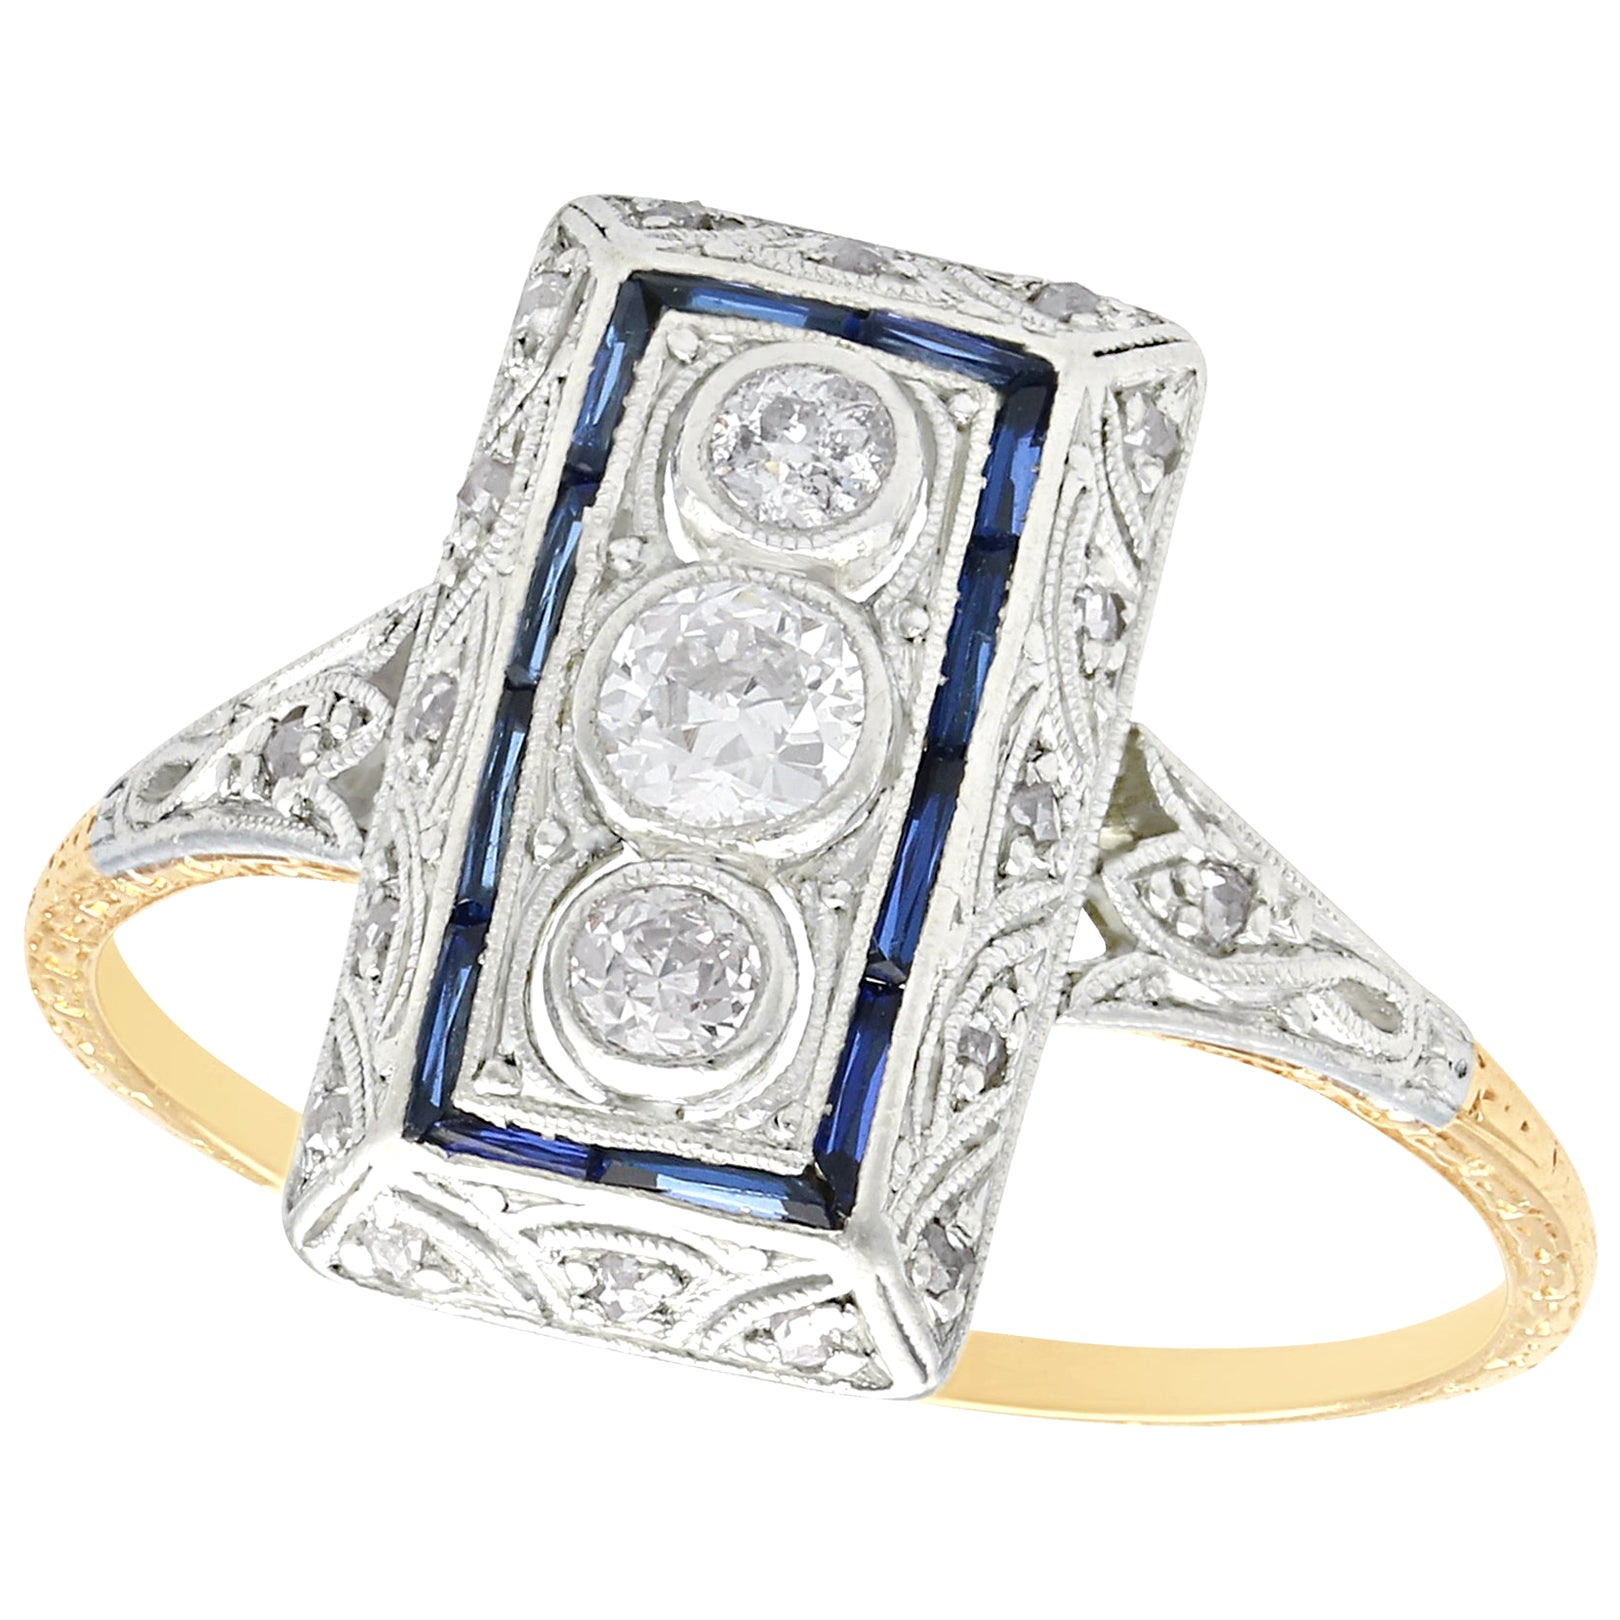 1920s Diamond and Sapphire Yellow Gold Art Deco Cocktail Ring